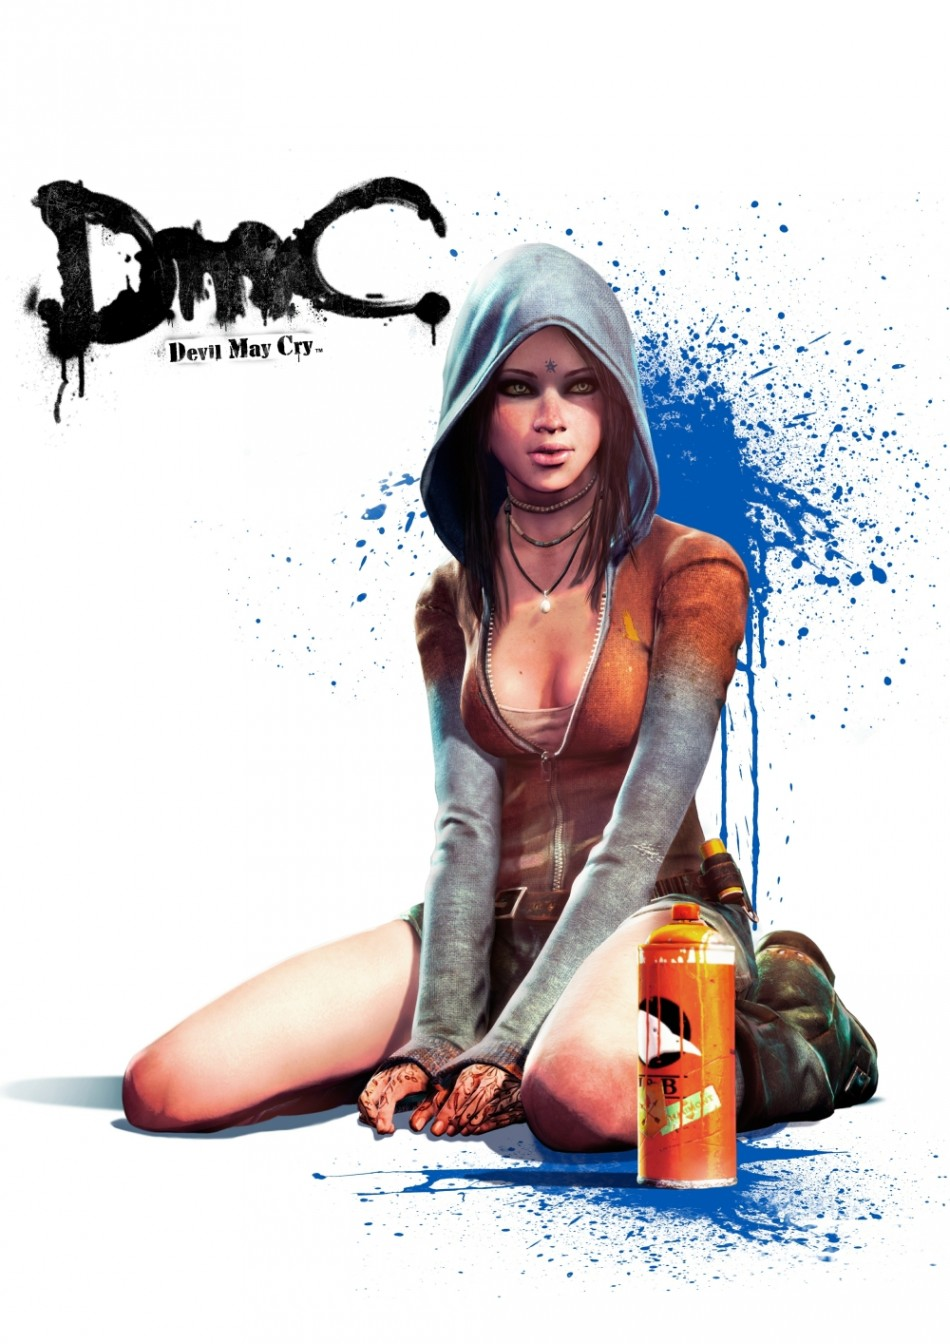 DmC Devil May Cry reboot New Character Kat